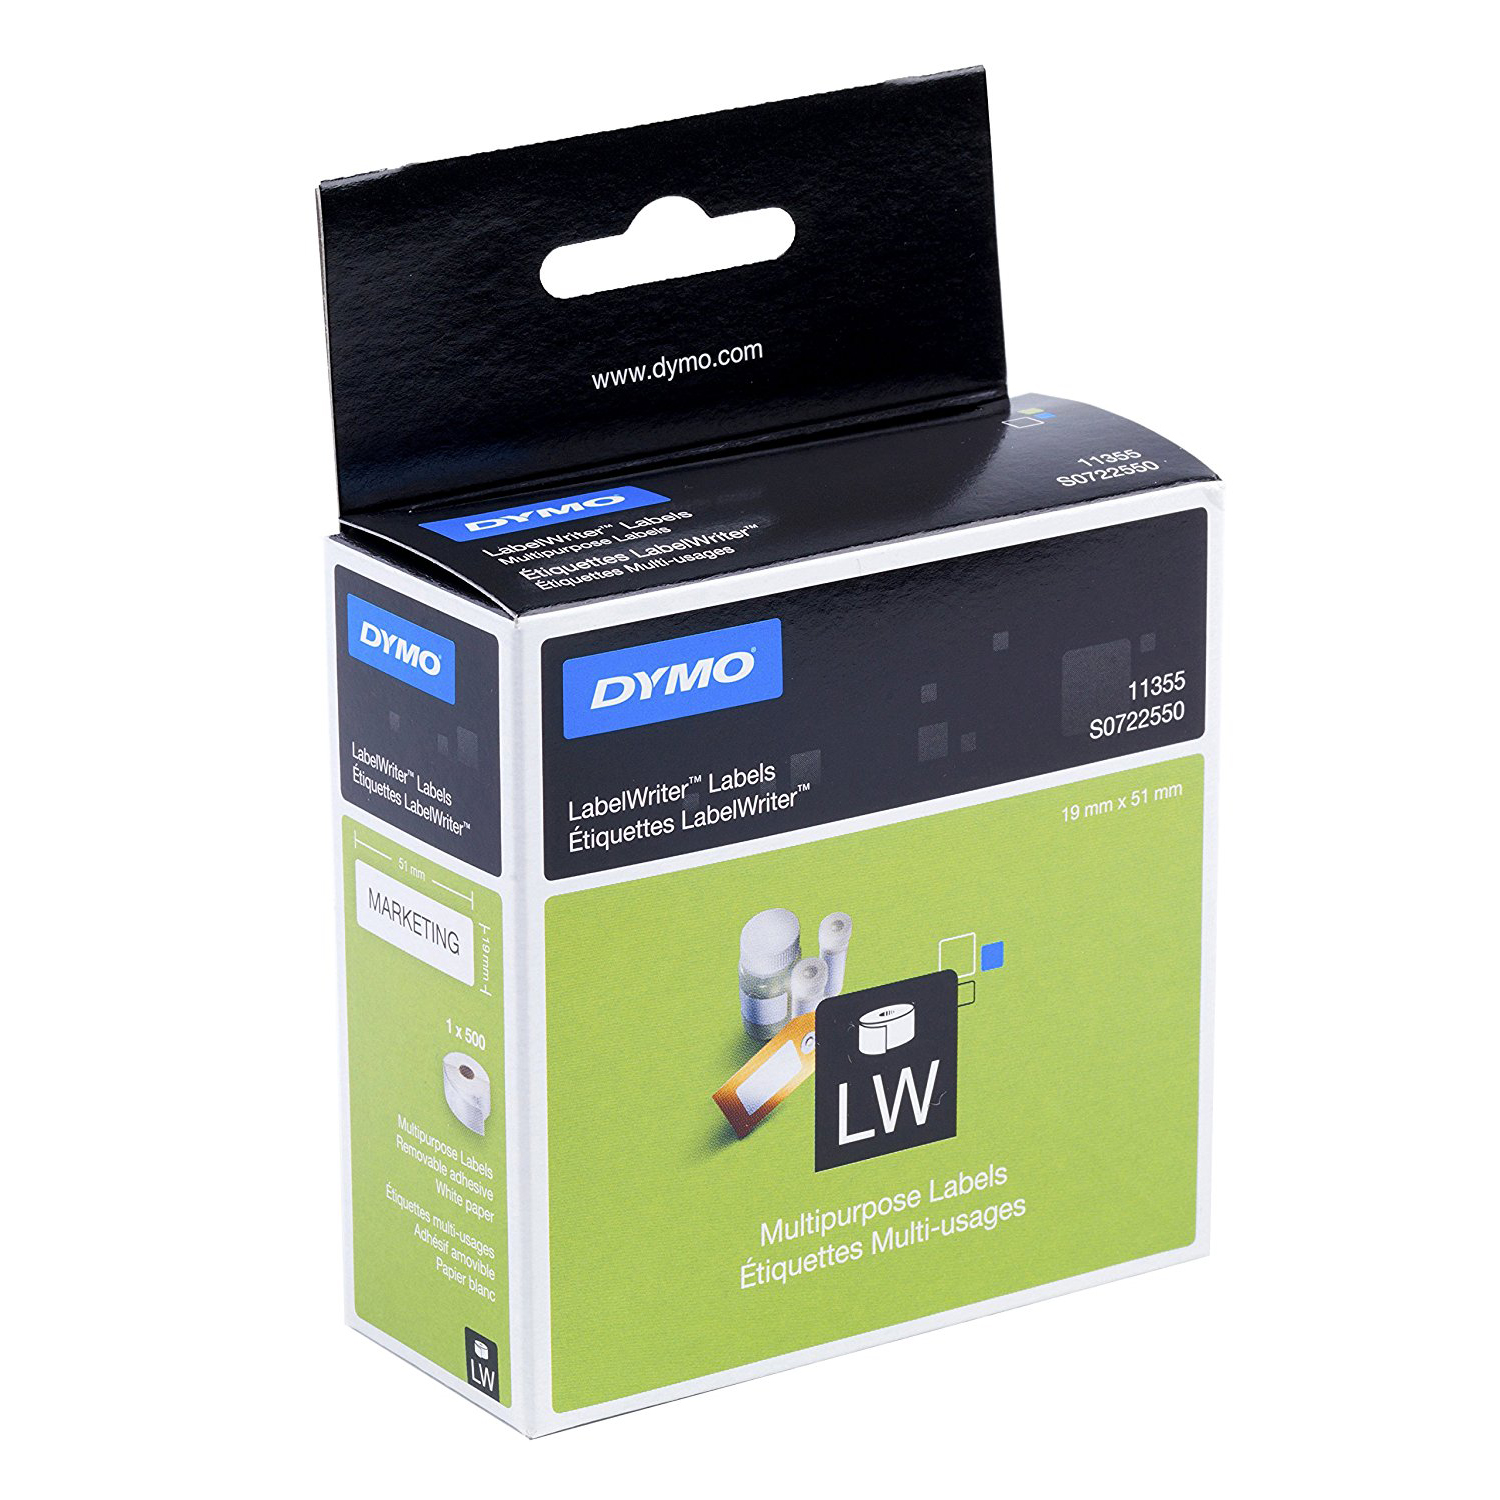 Dymo S0722550 (11355) LabelWriter Multi-Purpose Labels 19mm x 51mm 500 Labels/Roll - Black Print on White (roll)